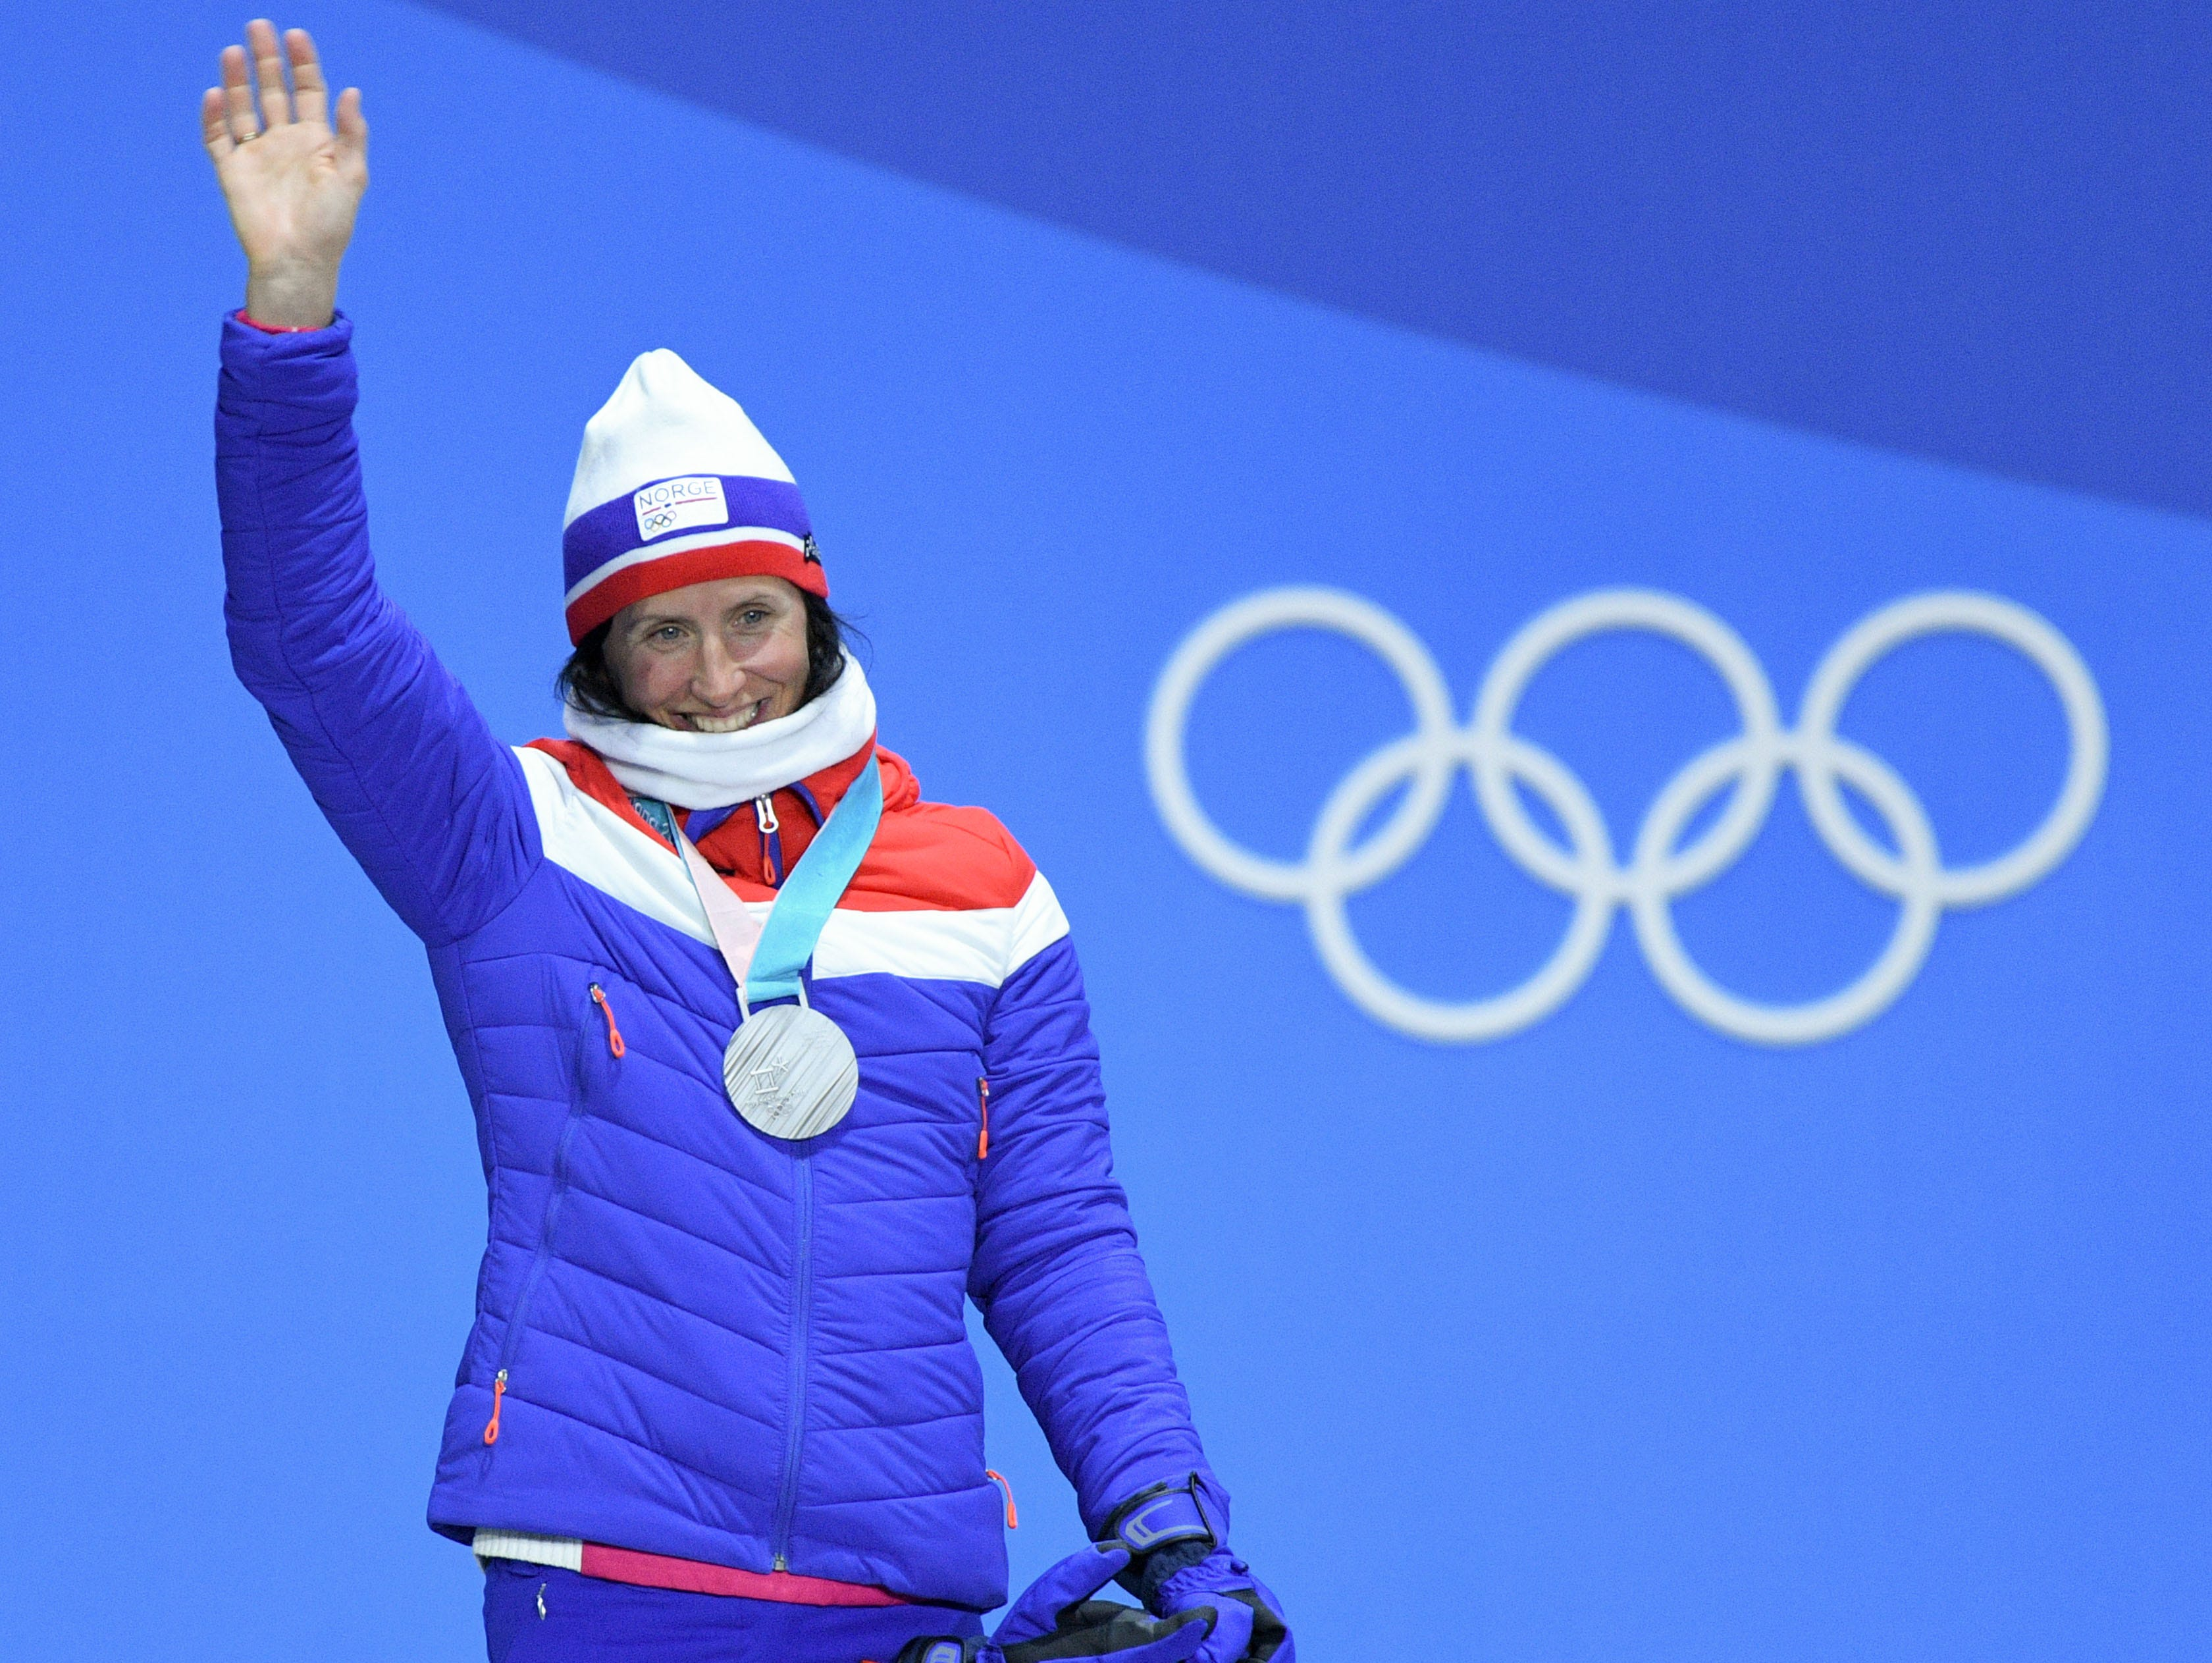 Meet Marit Bjoergen, now the most decorated female athlete in Winter Olympics history